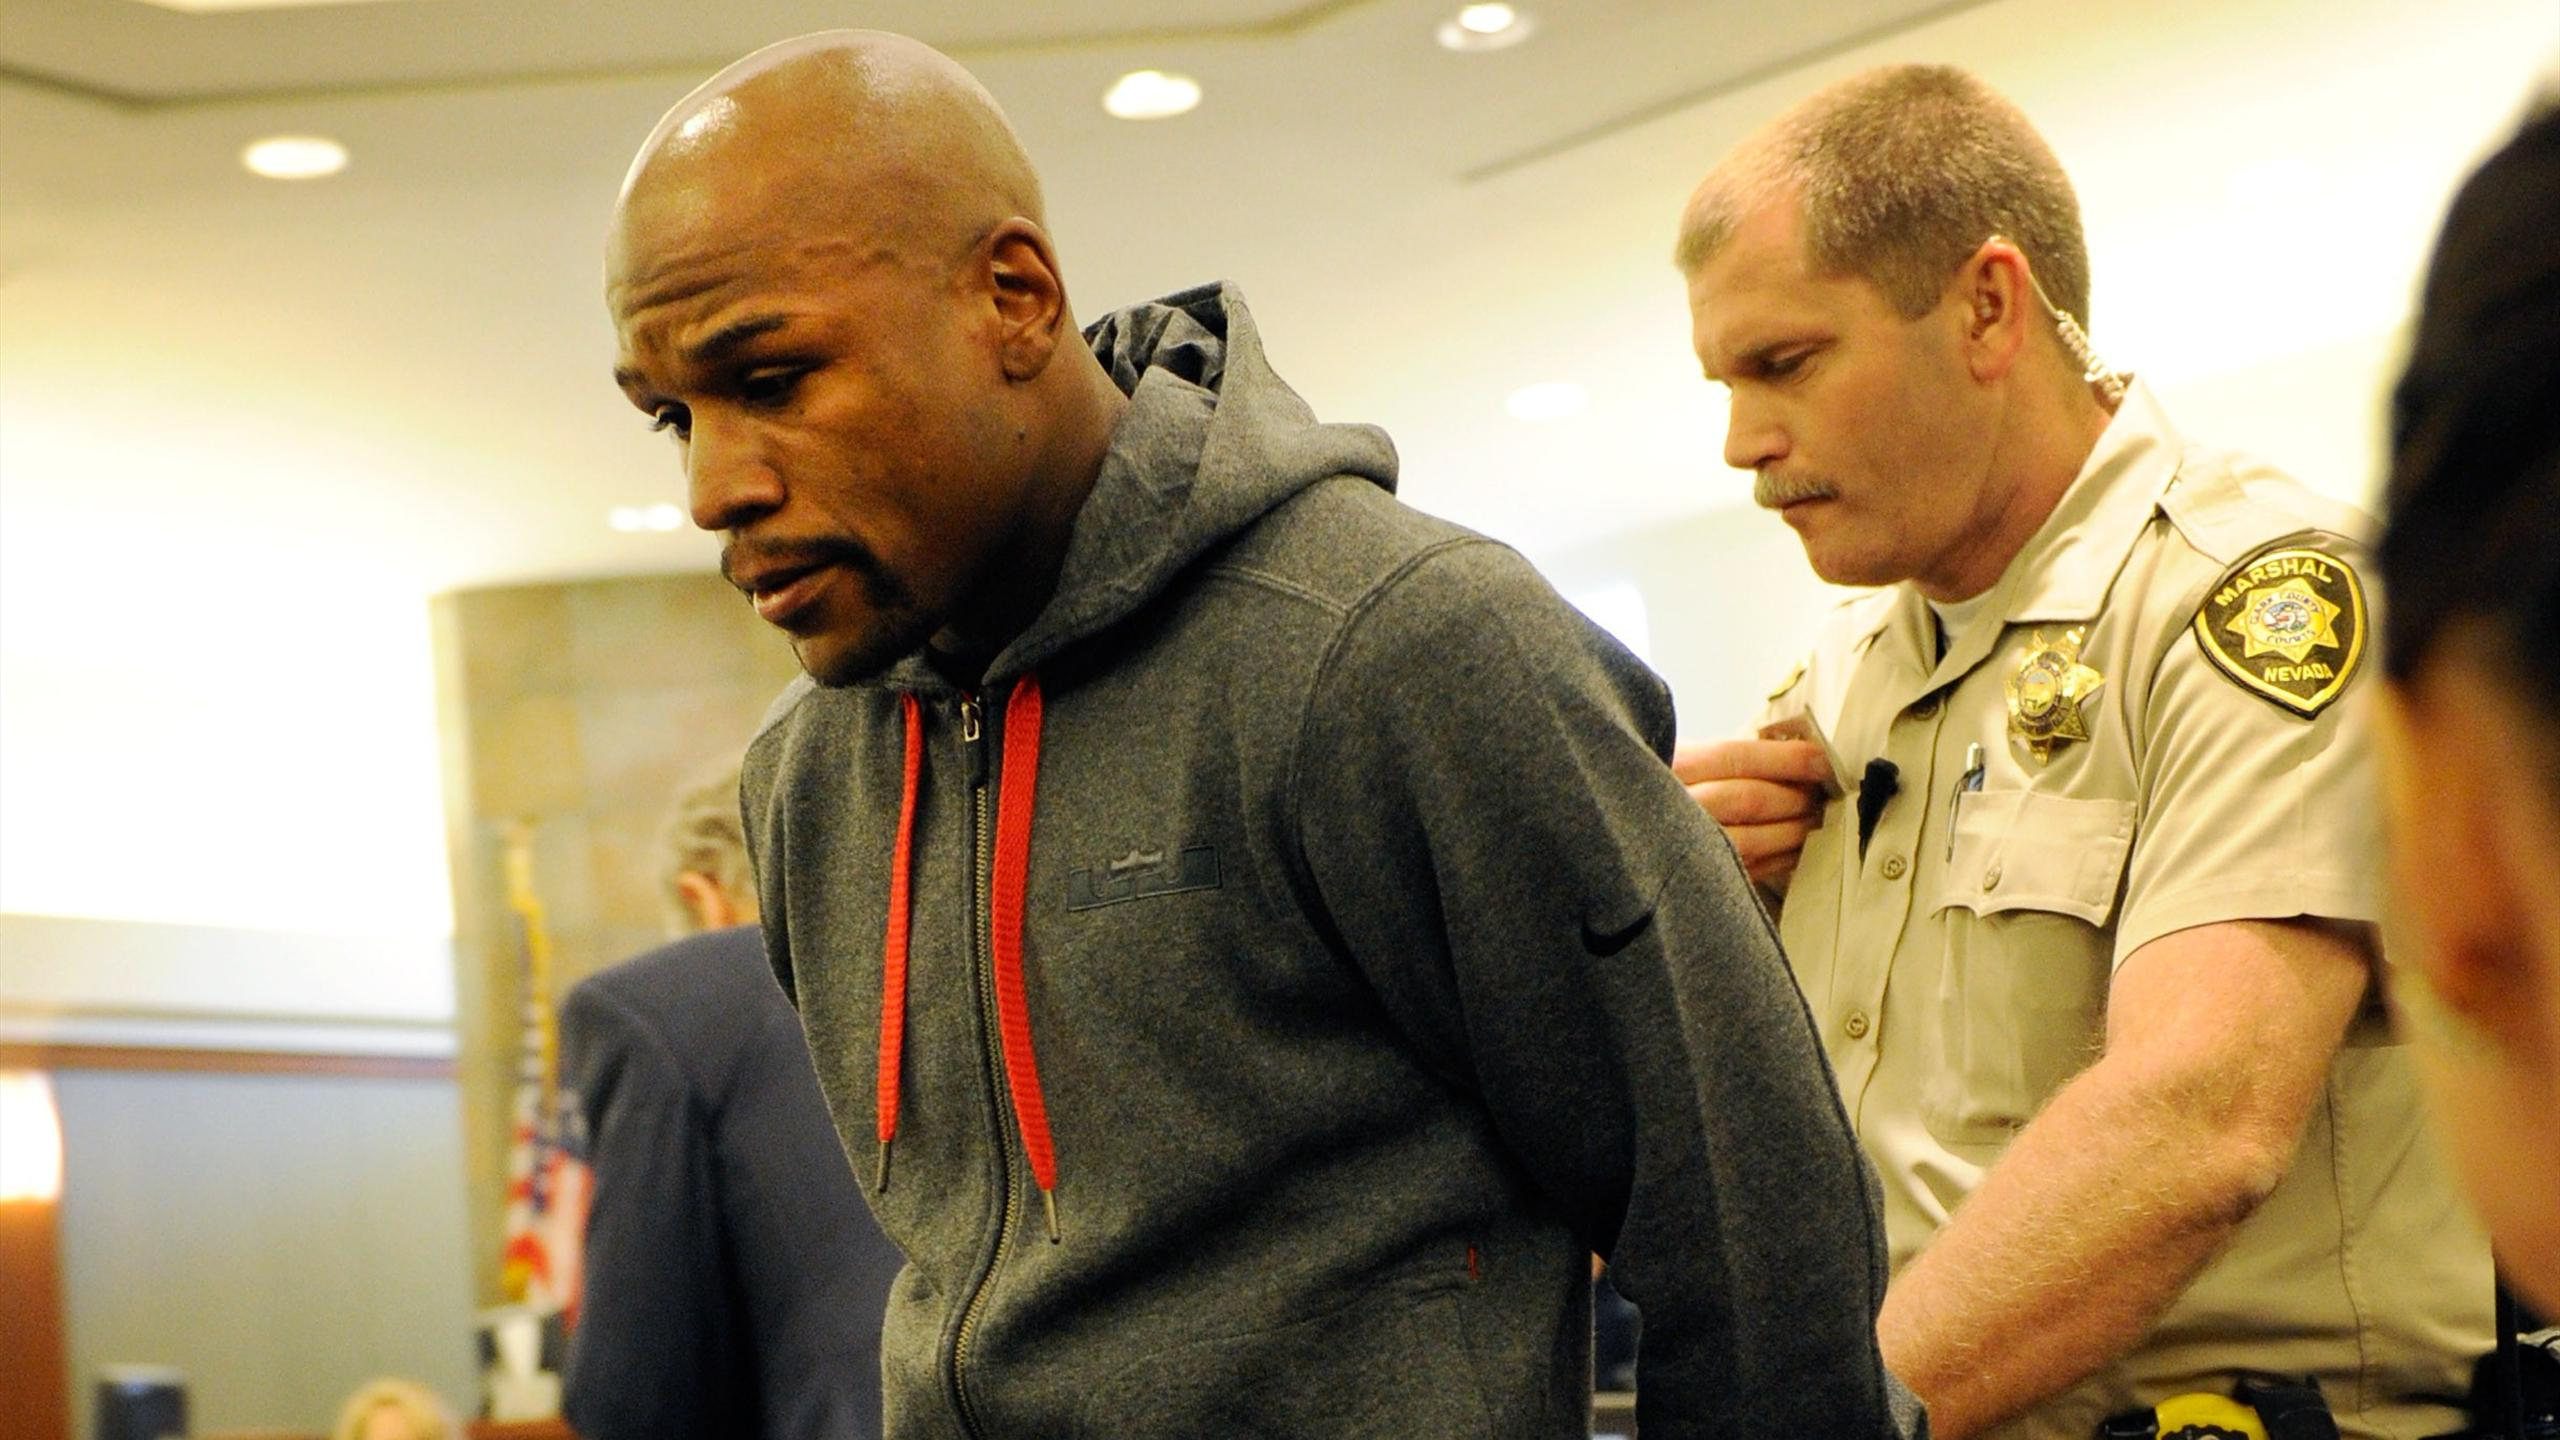 Boxer Floyd Maywether Jr. is lead away in handcuffs at the Clark County Regional Justice Center as he surrenders to serve a three-month jail sentence on June 1, 2012 in Las Vegas, Nevada